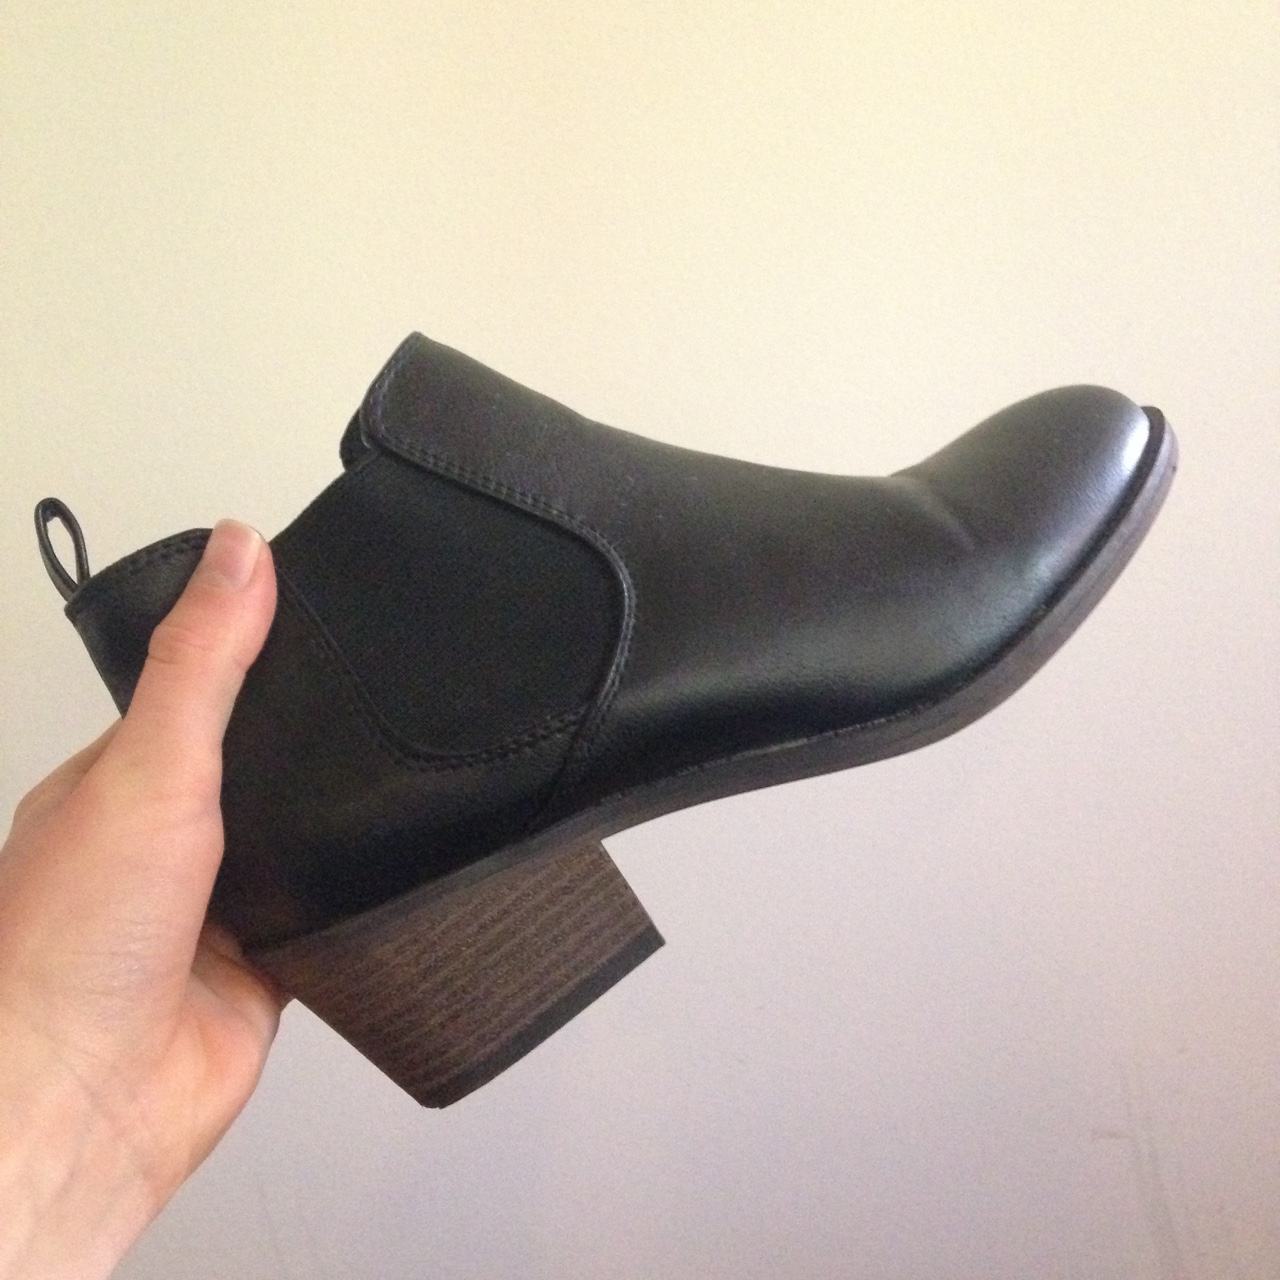 Kmart ankle boots with slight heel